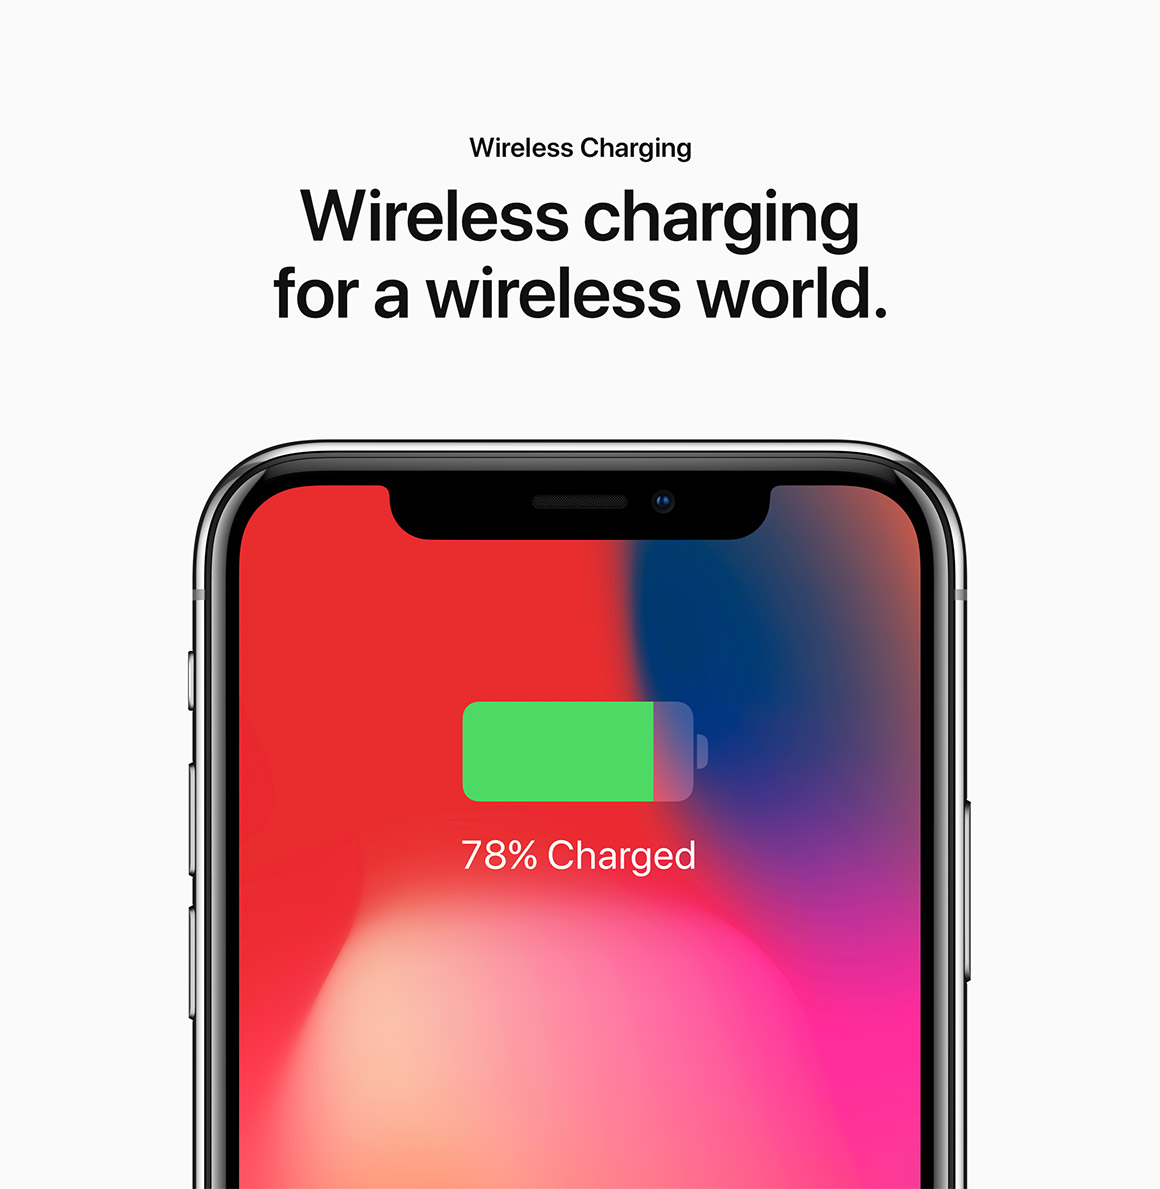 Wireless charging for a wireless world.